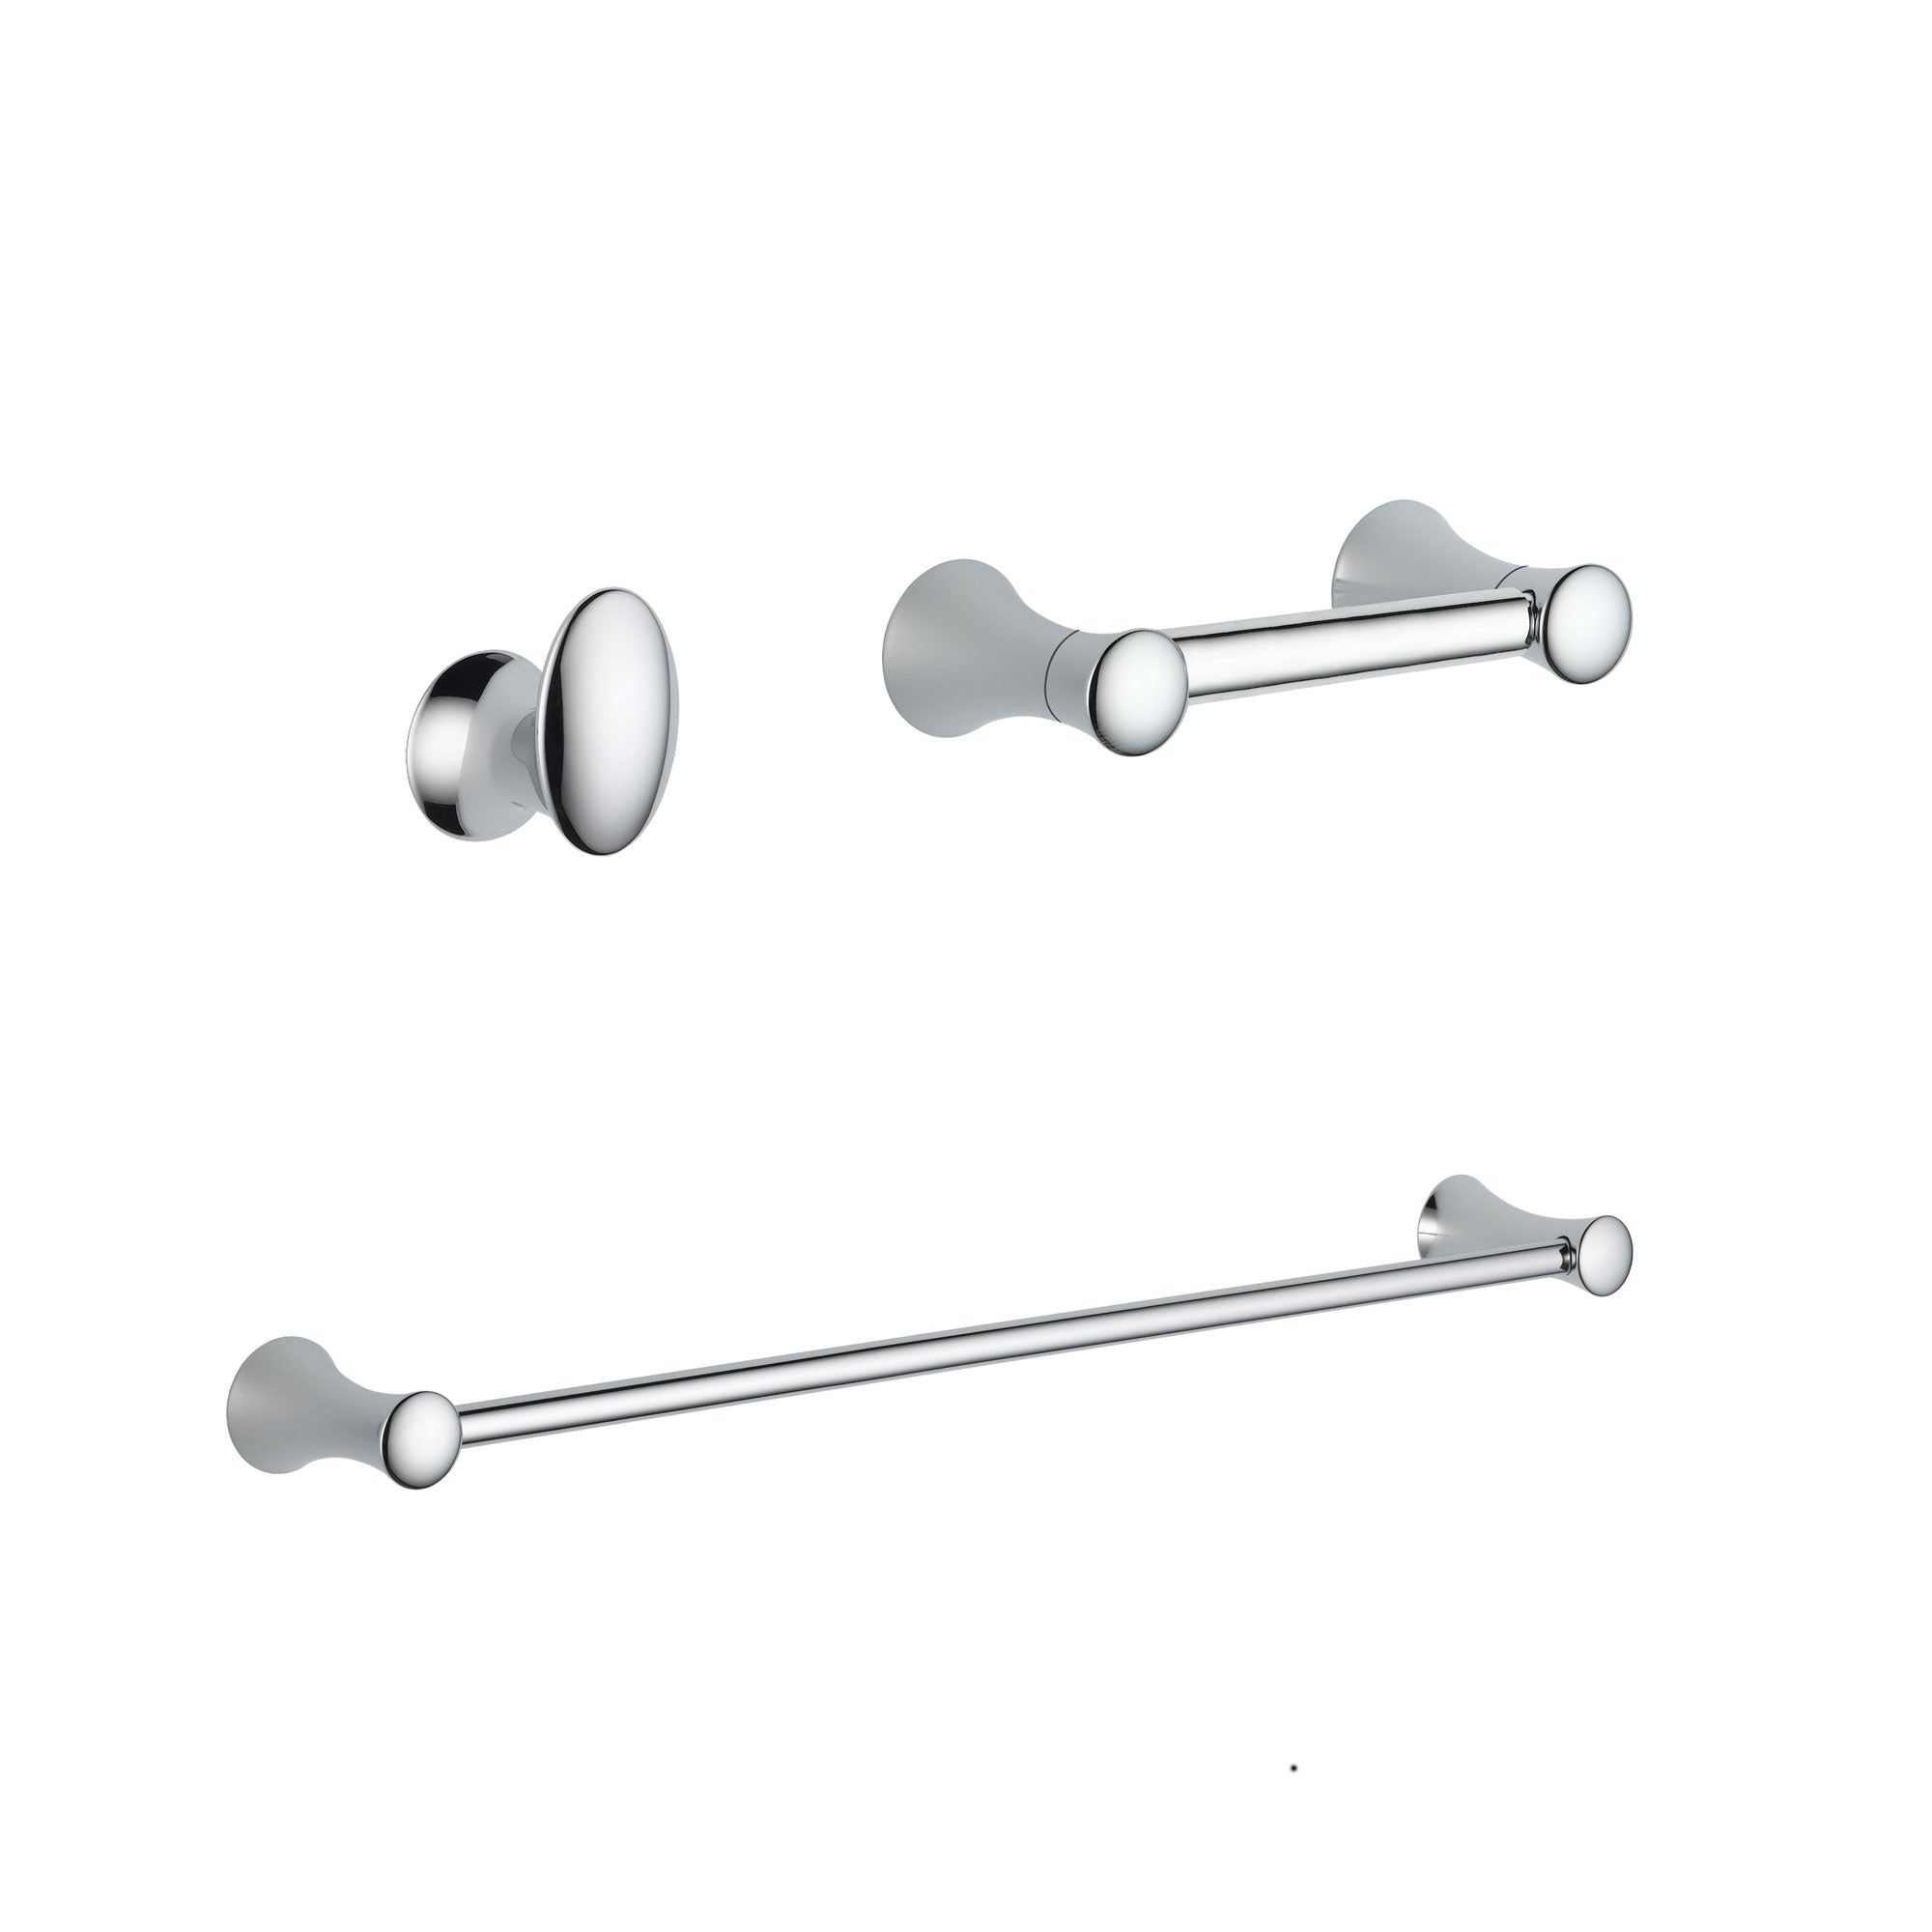 "Delta Lahara Chrome BASICS Bathroom Accessory Set Includes: 24"" Towel Bar, Toilet Paper Holder, and Robe Hook D10046AP"